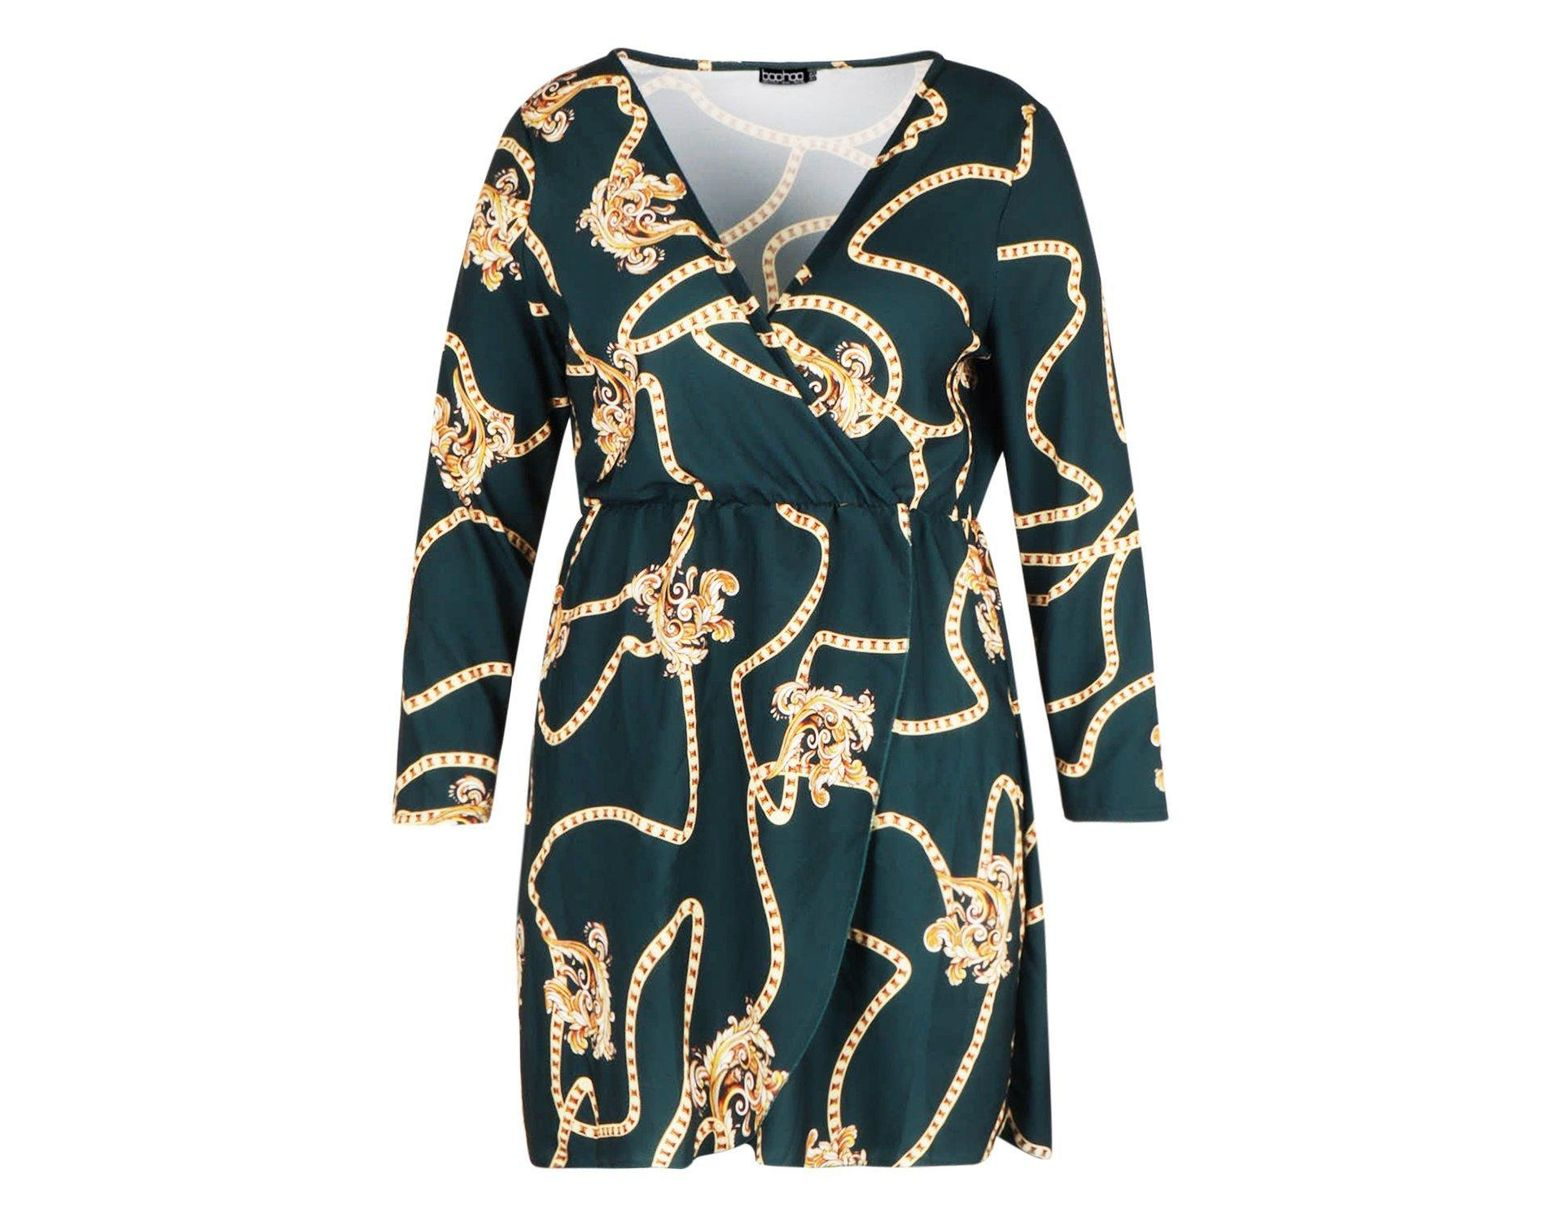 7b21bc2505641 Boohoo Plus Chain Printed Wrap Dress in Green - Lyst